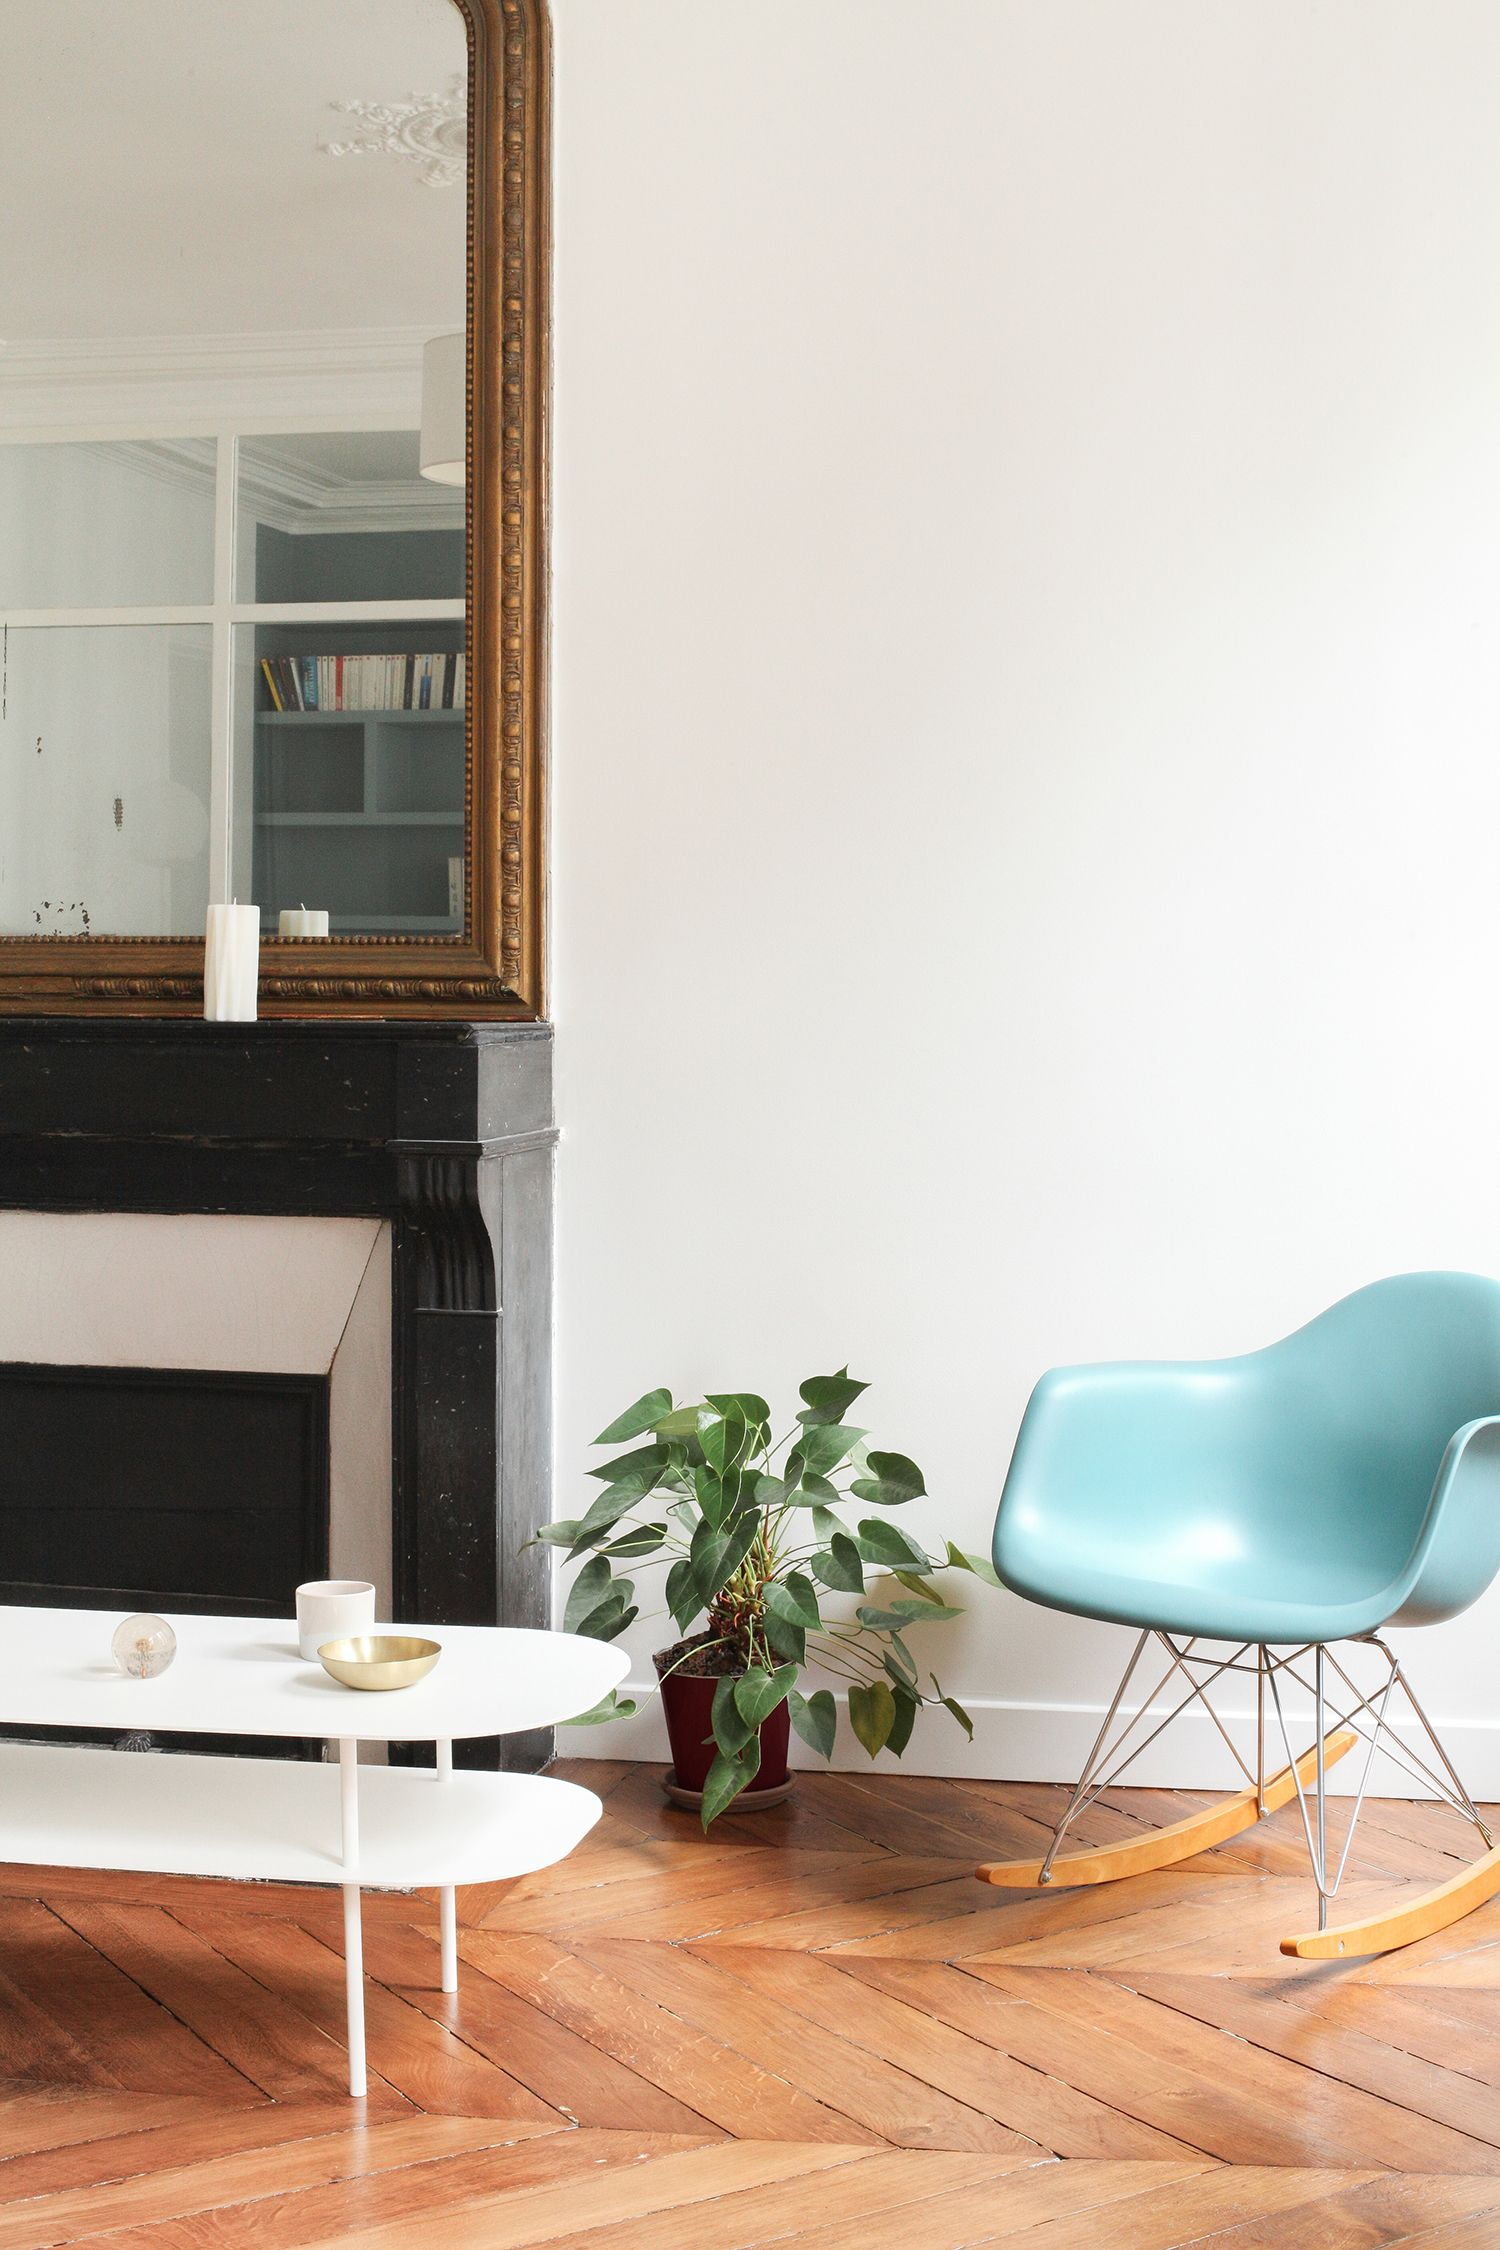 Idée Déco Appartement Ancien Archi Renovation Appartement Bleu Heju Studio 4 Ar In 2019